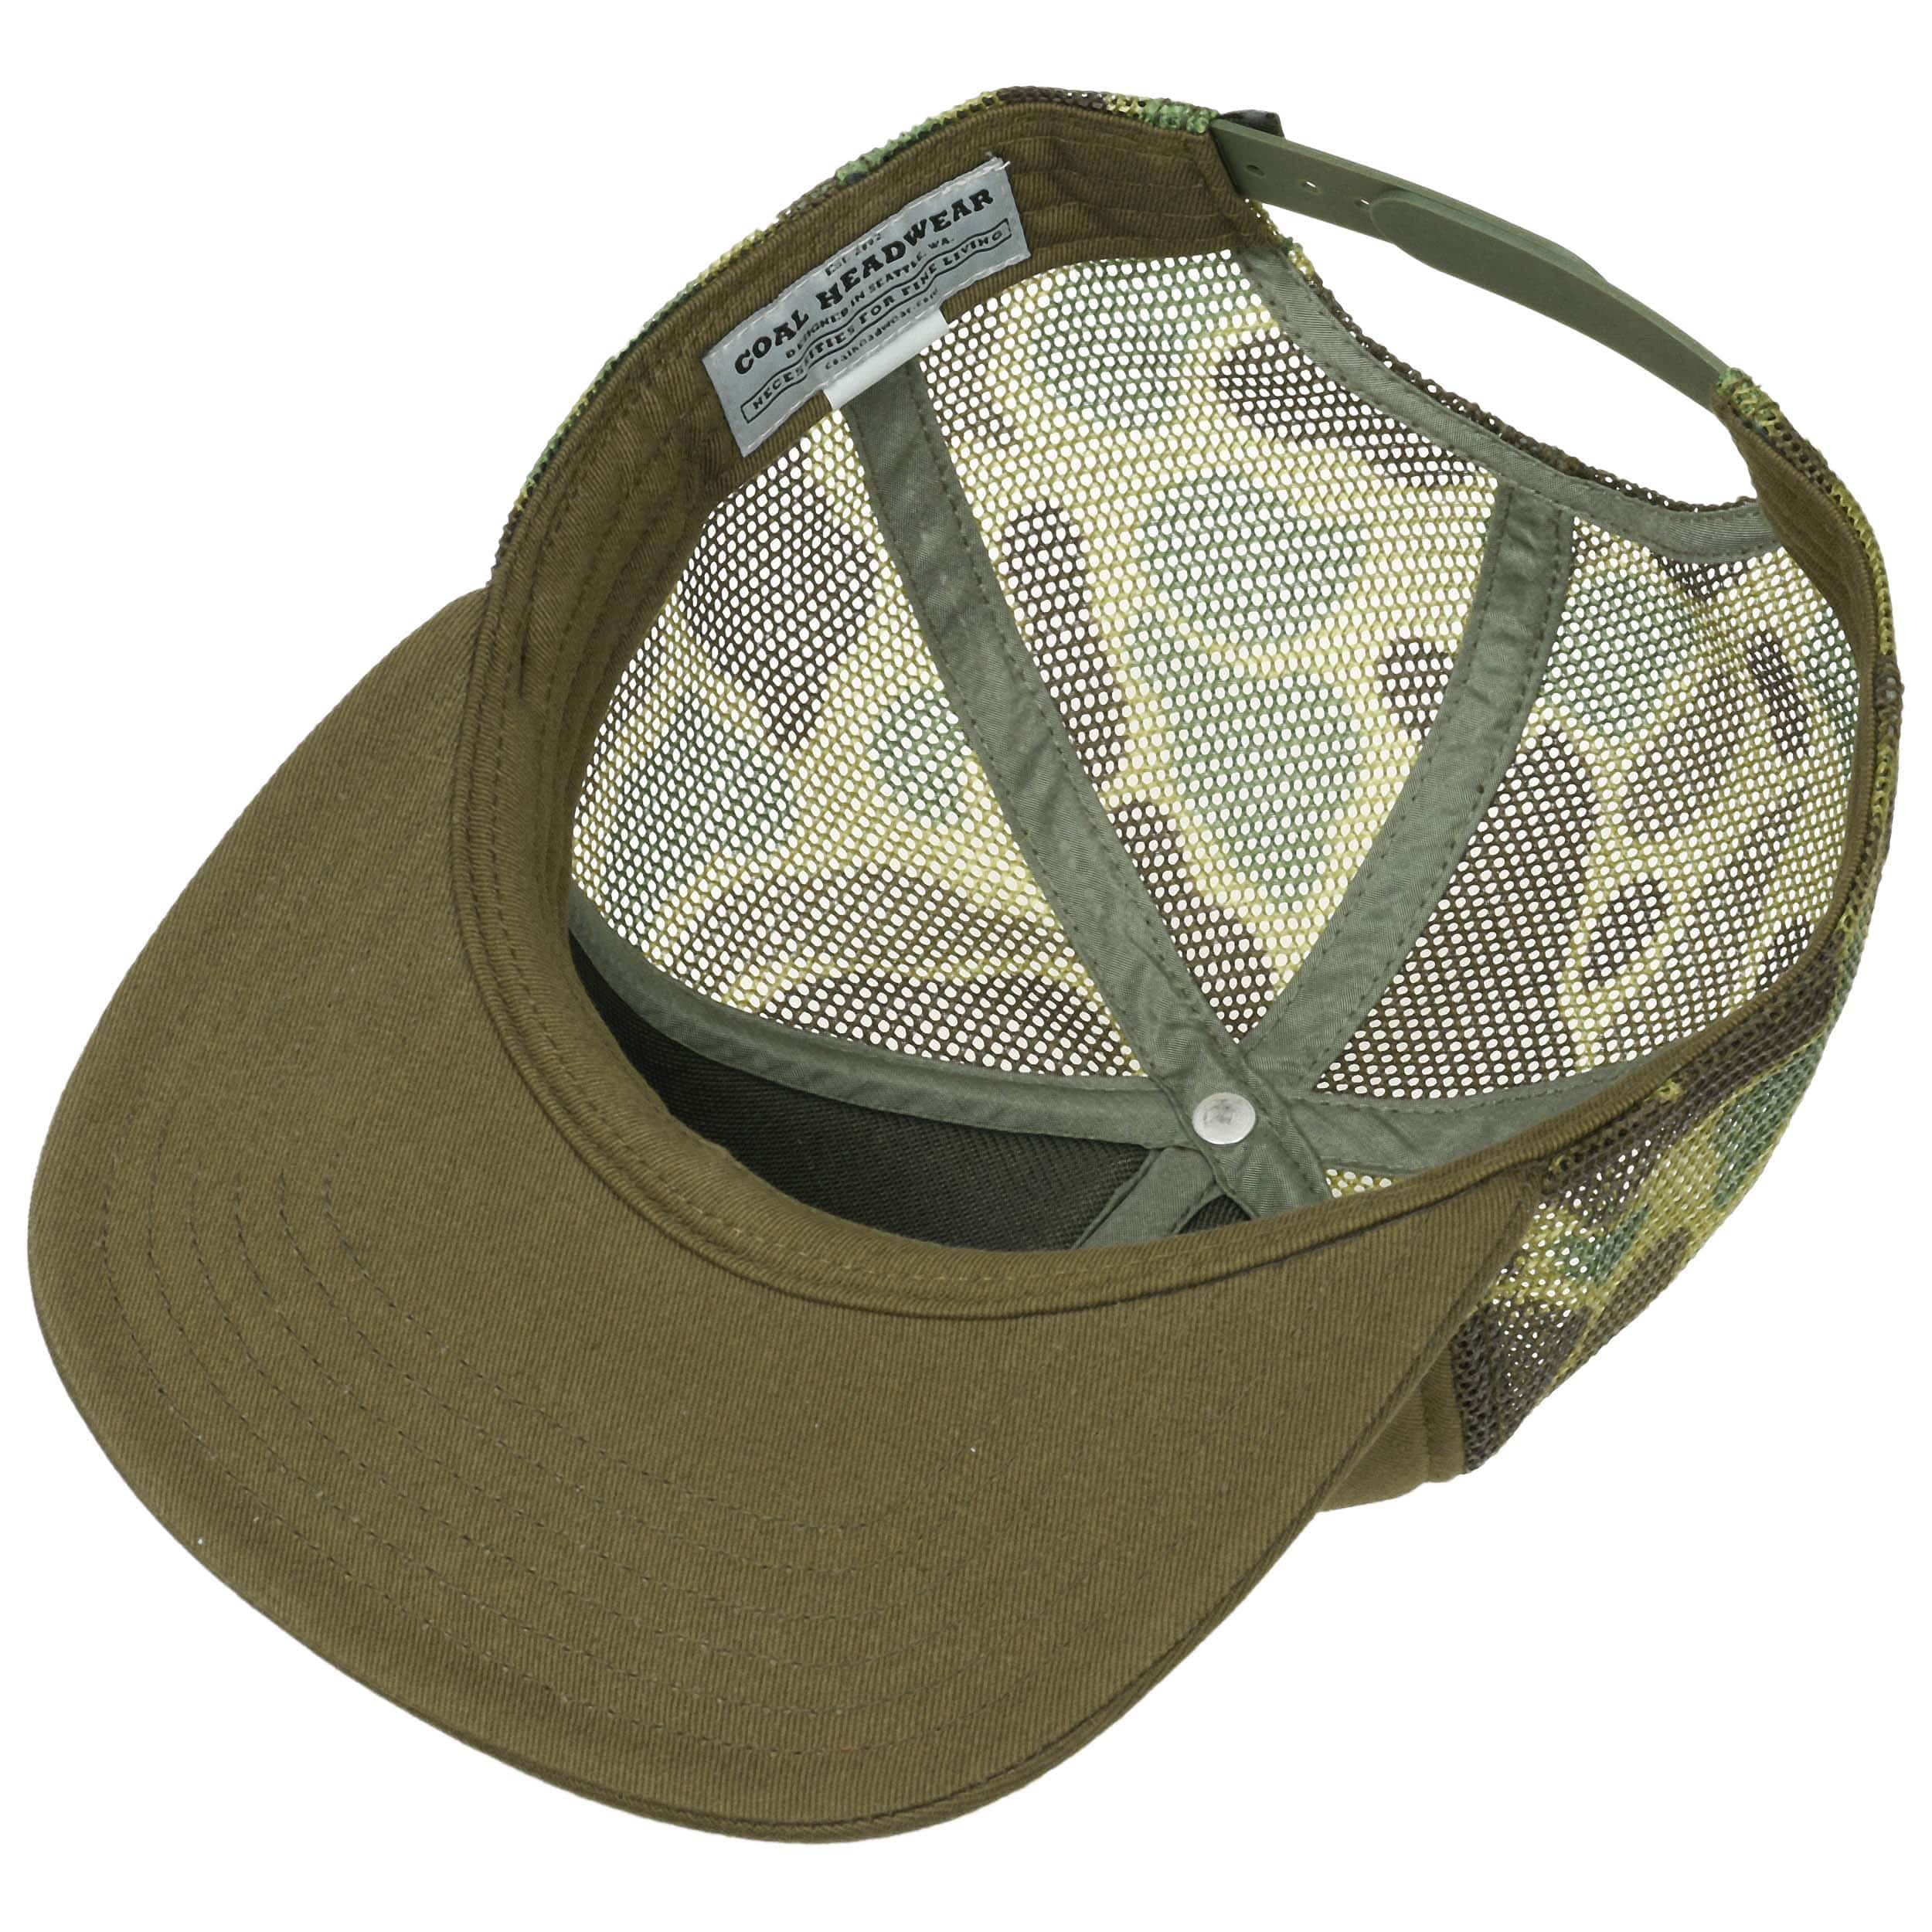 44064e470eb ... The Bureau Trucker Cap by Coal - camouflage 2 ...